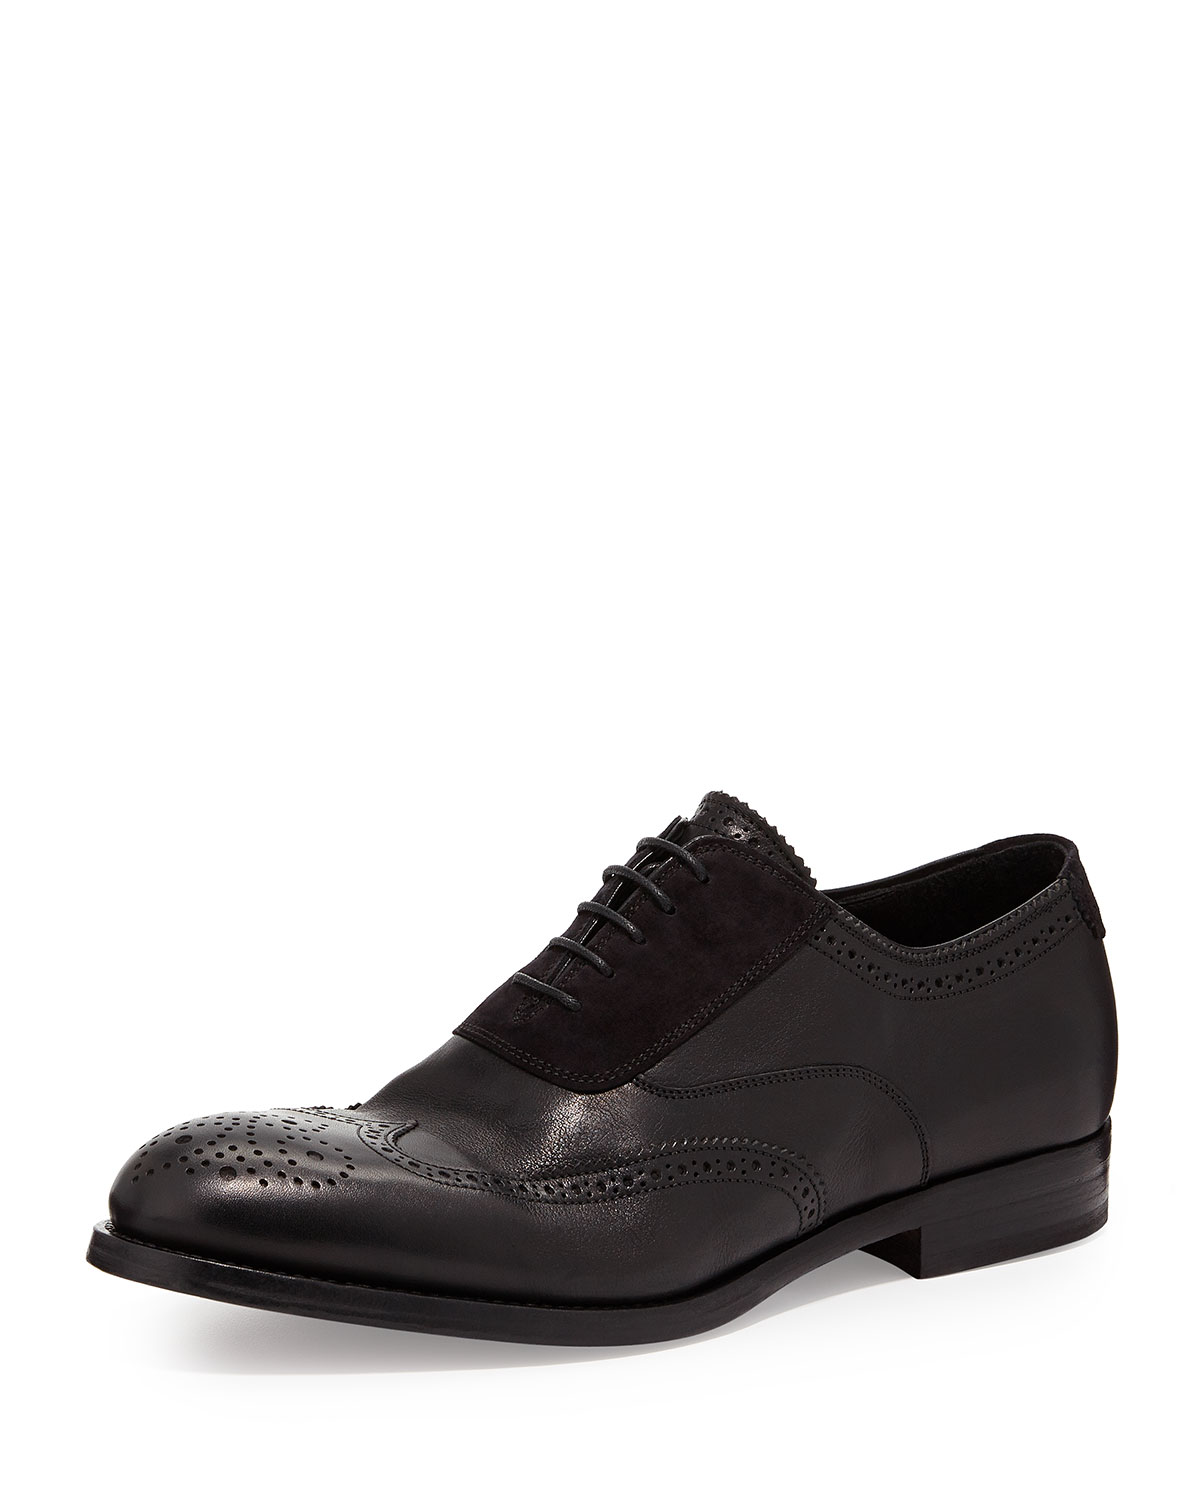 Suede/Leather Brogue Oxford, Black